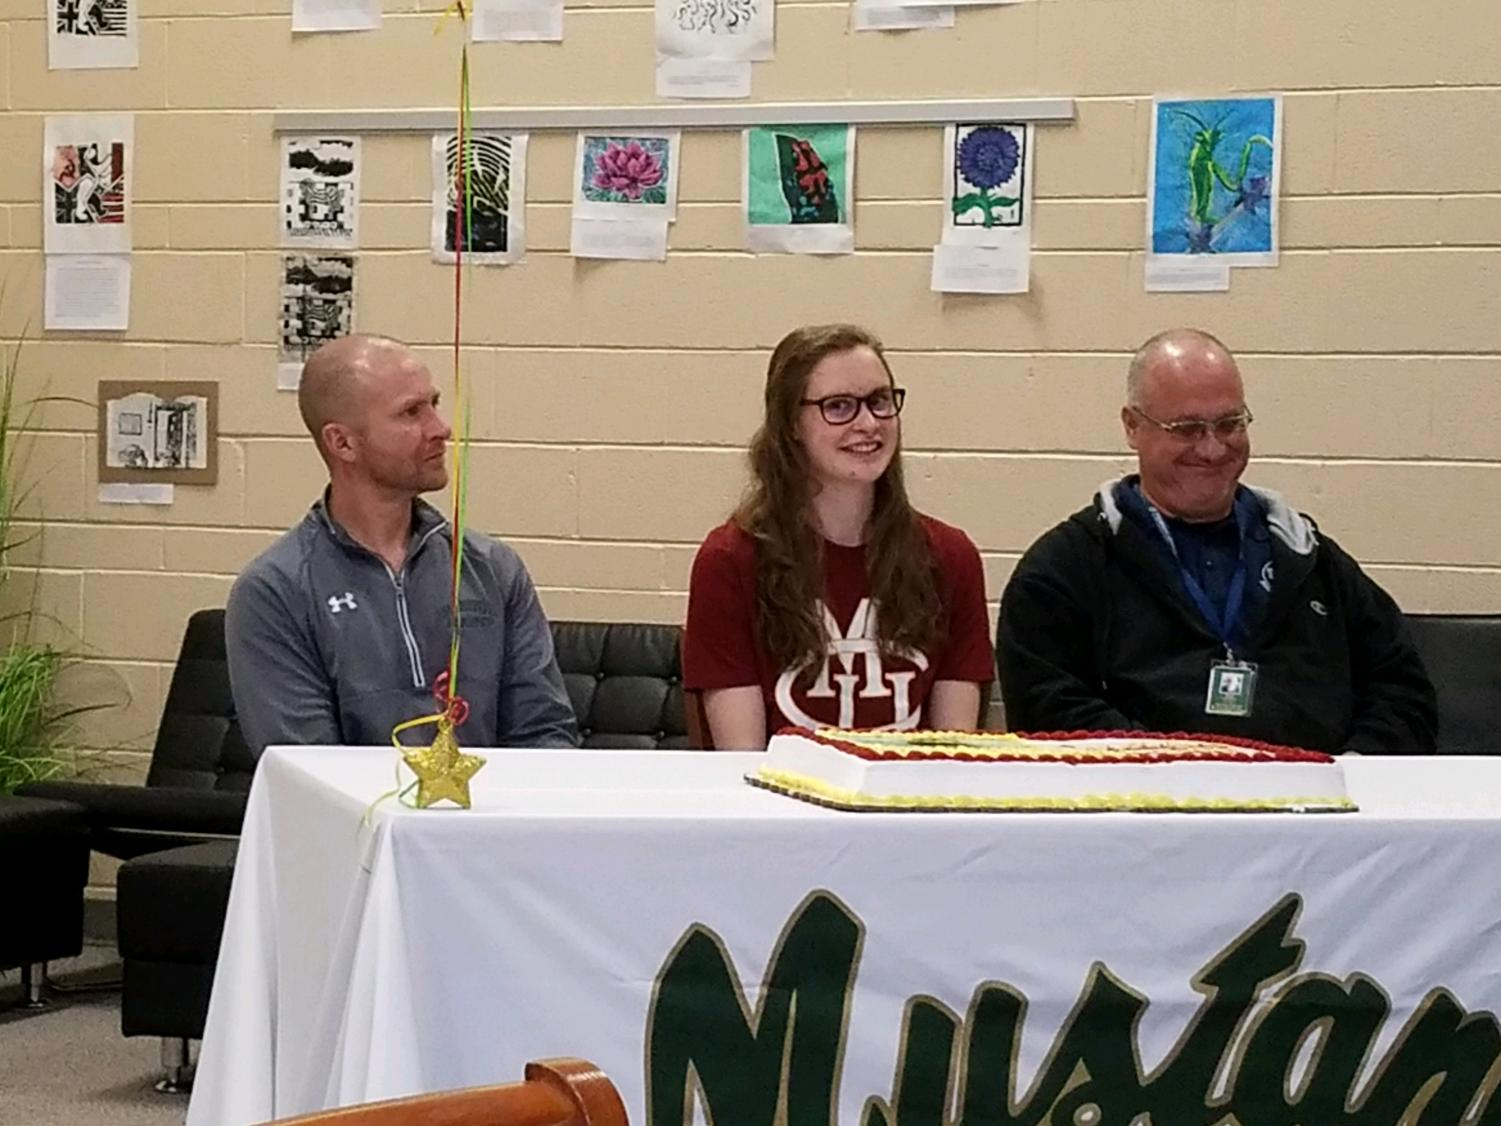 Sydney Dolloff-Holt (12) signs with MSHS Athletic Director Cameron Jones and Colorado Torpedoes Head Swim Coach Roy Chaney present. Dolloff-Holt will attend Colorado Mesa University in the fall.